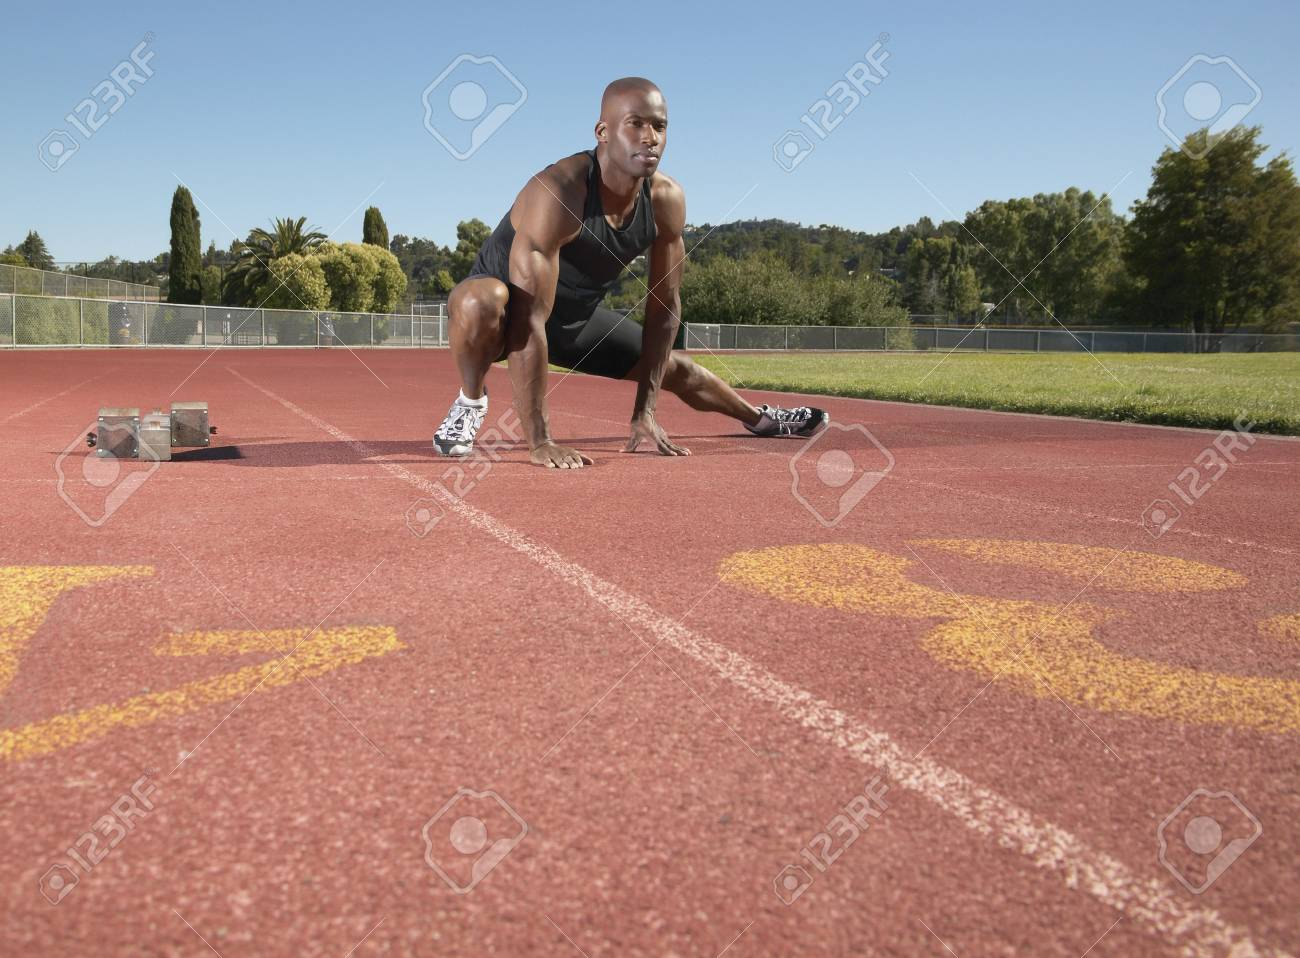 Young man stretching on a running track Stock Photo - 16045471